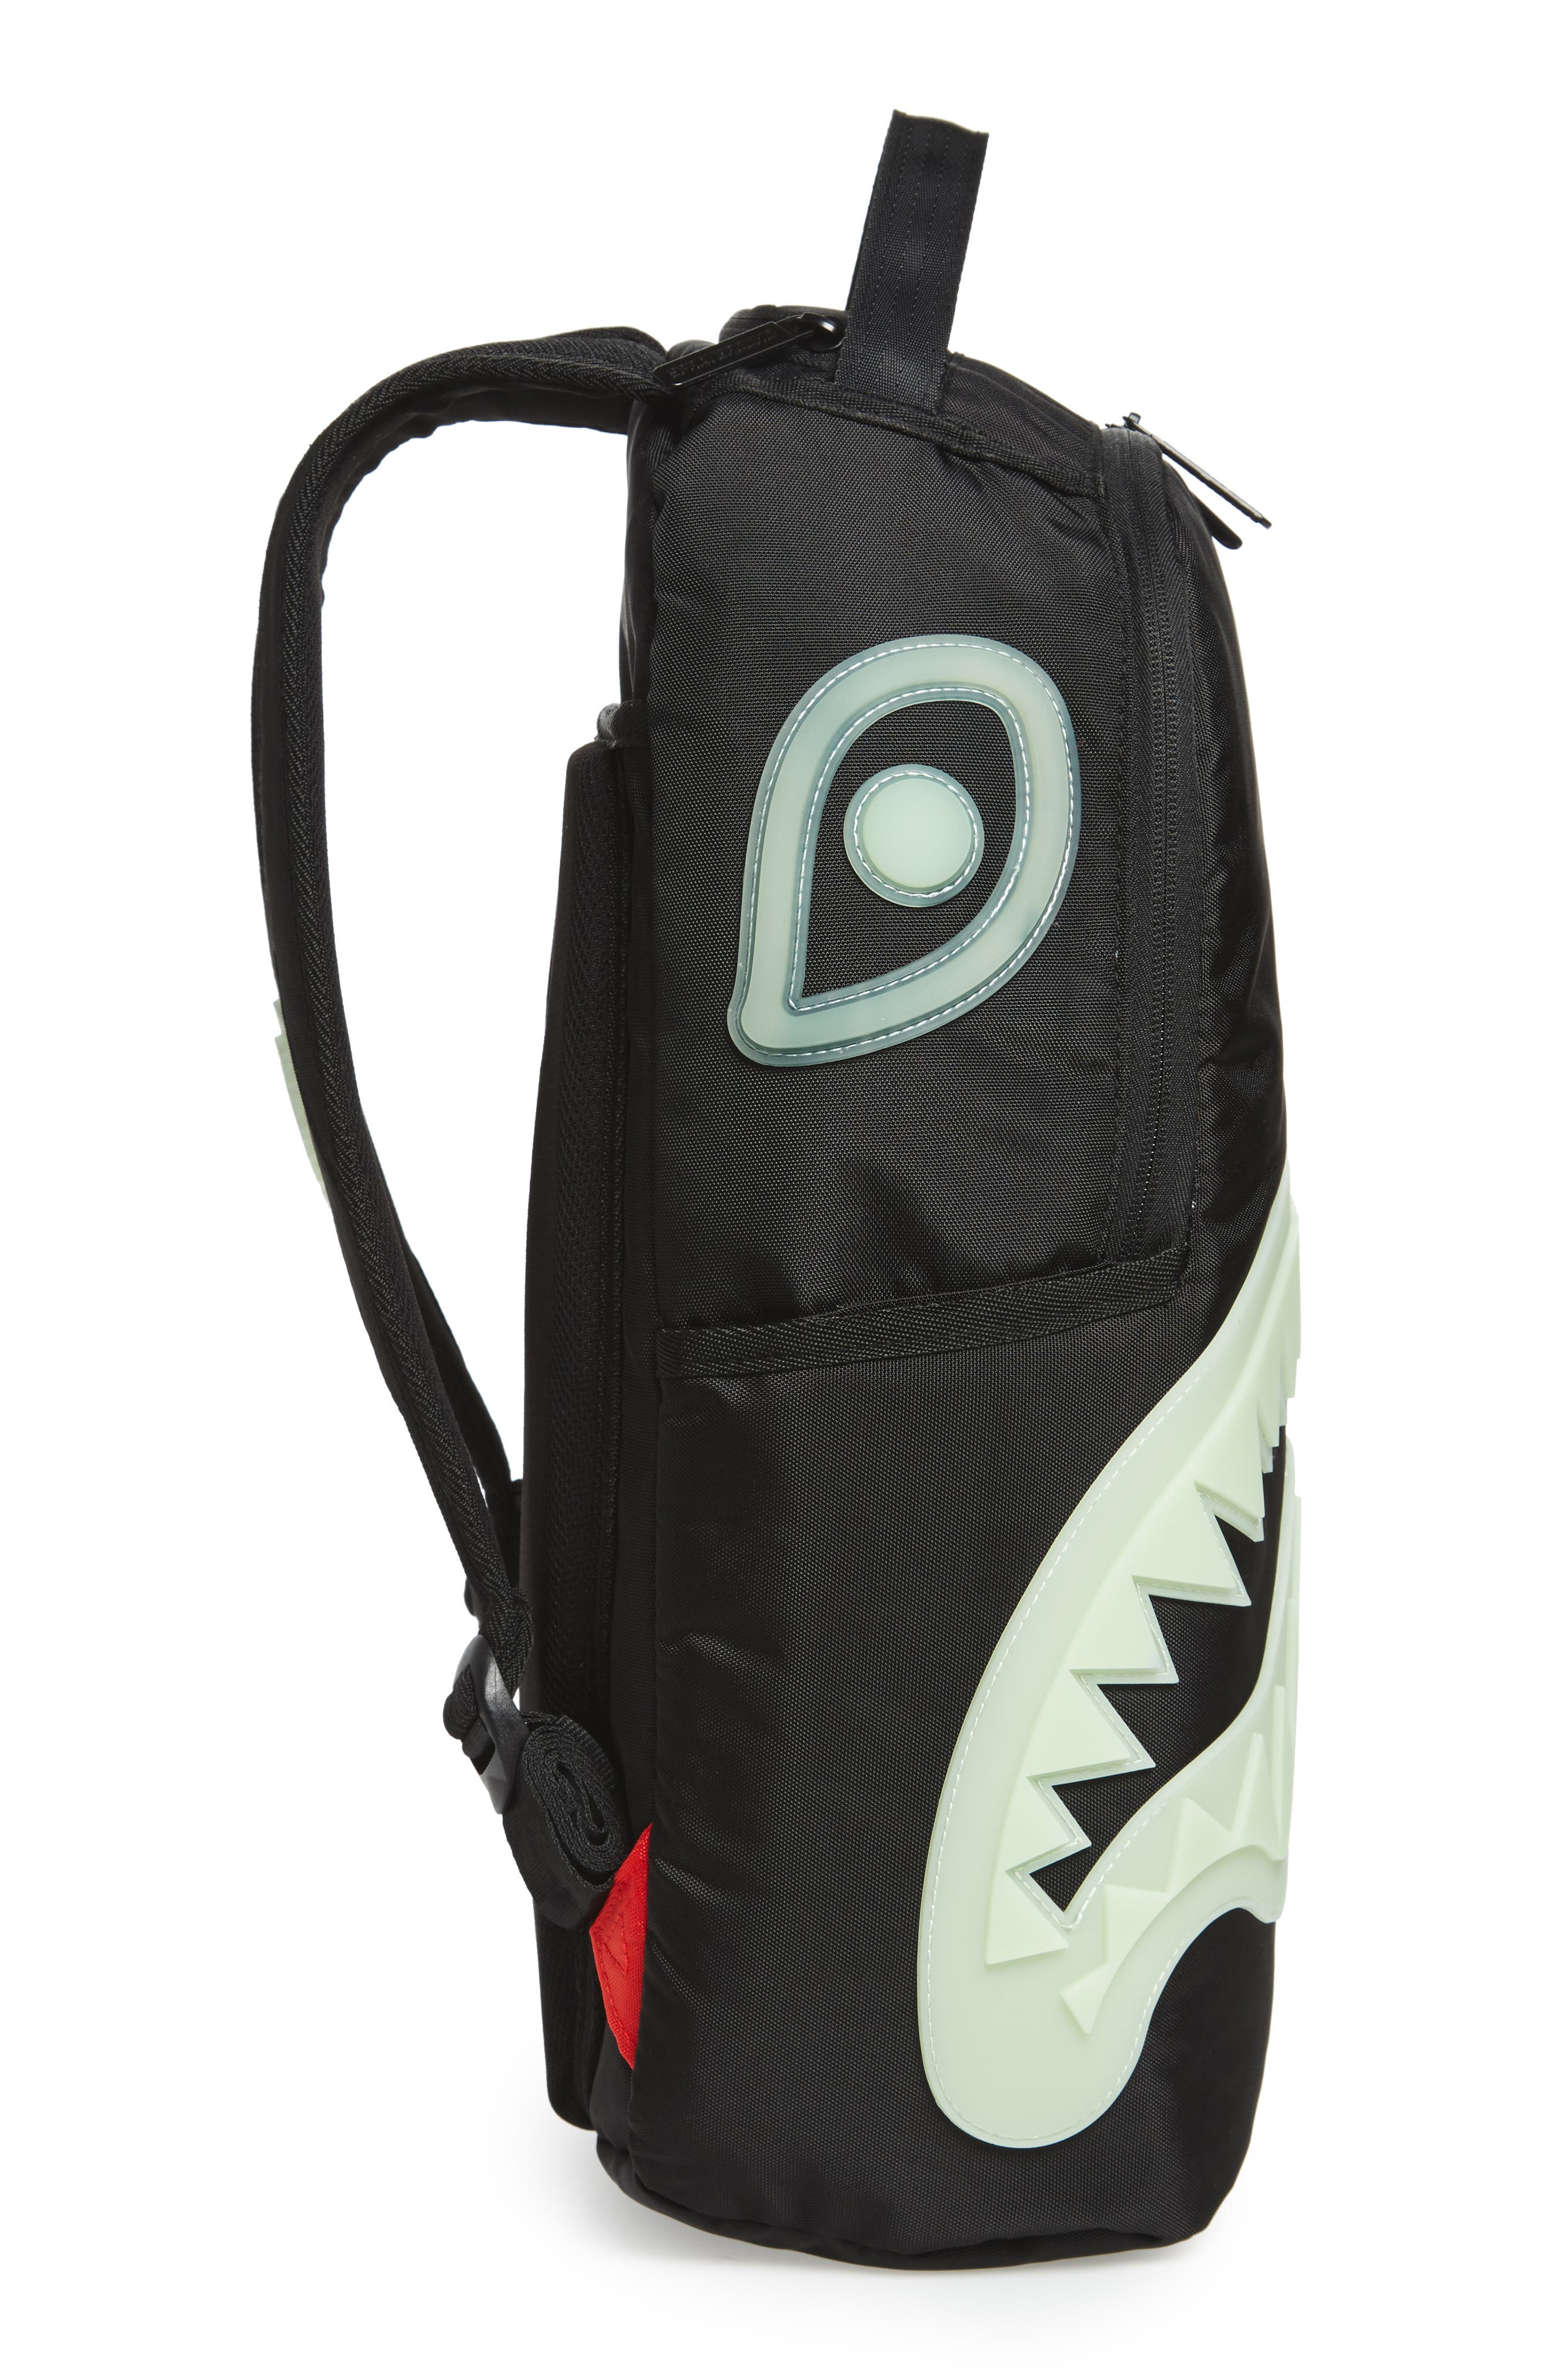 Glow in the Dark Shark Backpack,                             Alternate thumbnail 4, color,                             Black